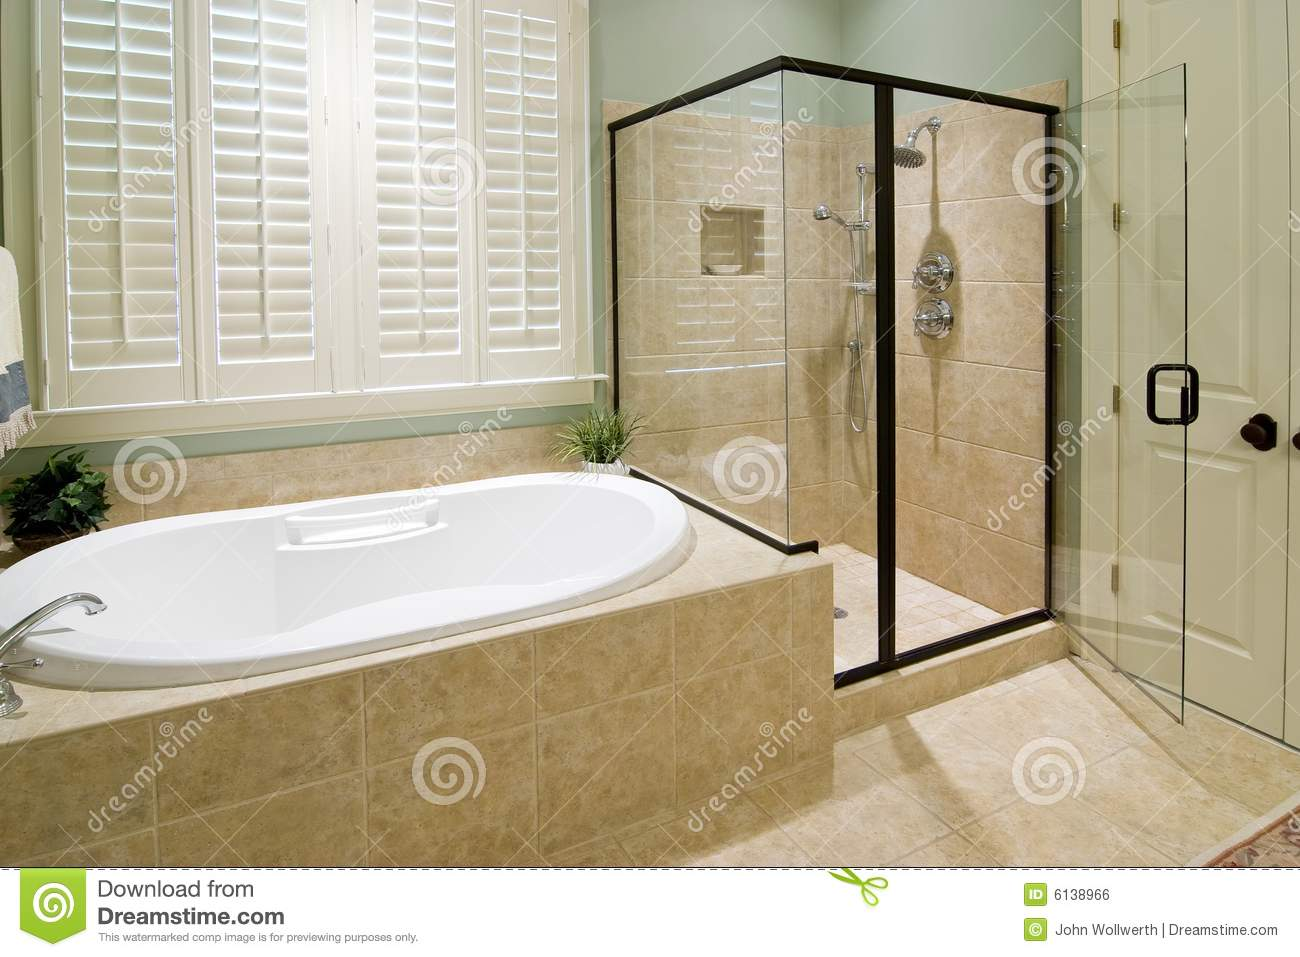 Bathroom with shower stock photo. Image of glass, luxurious - 6138966